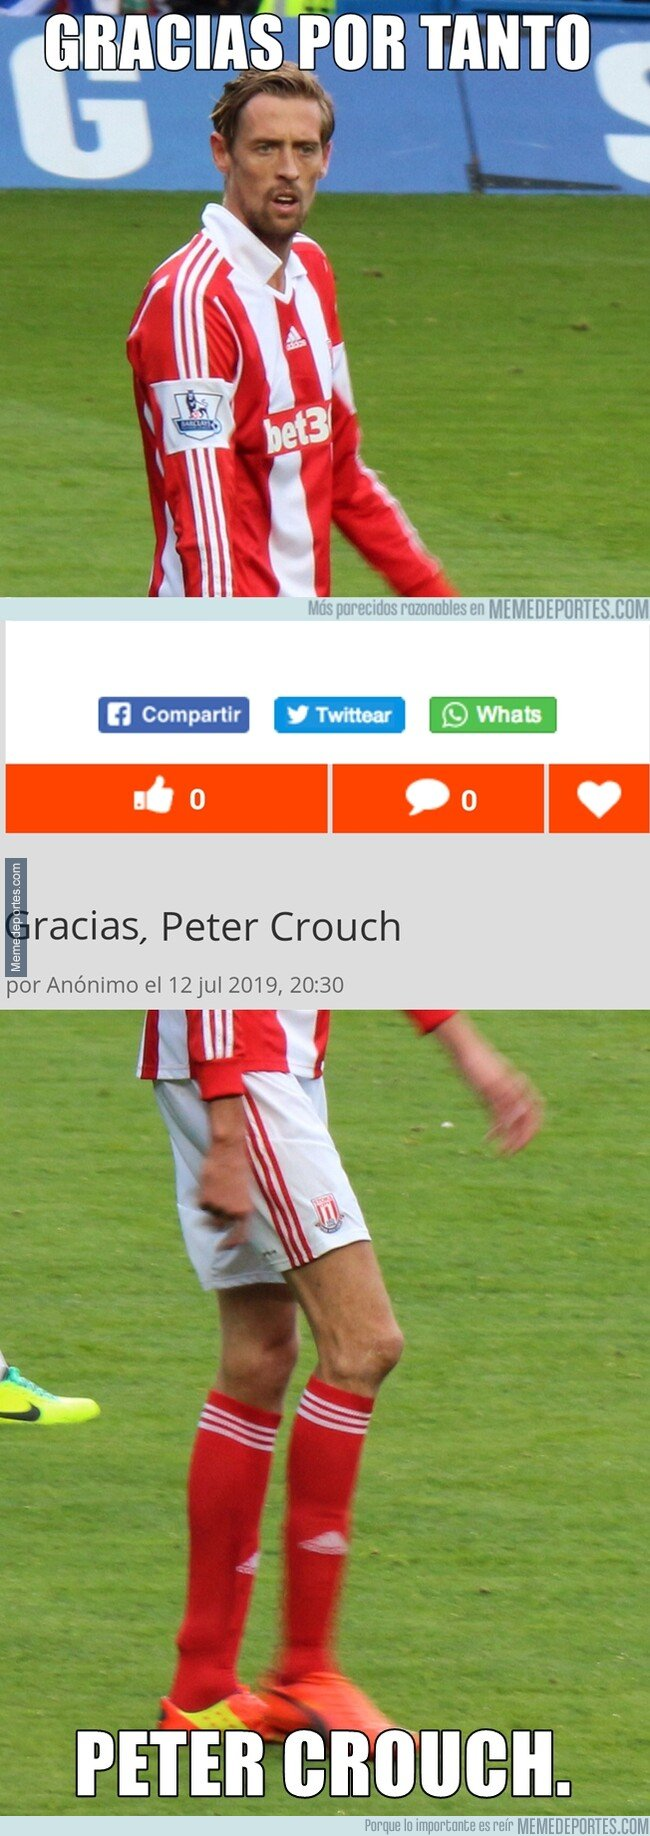 1080902 - Gracias, Peter Crouch